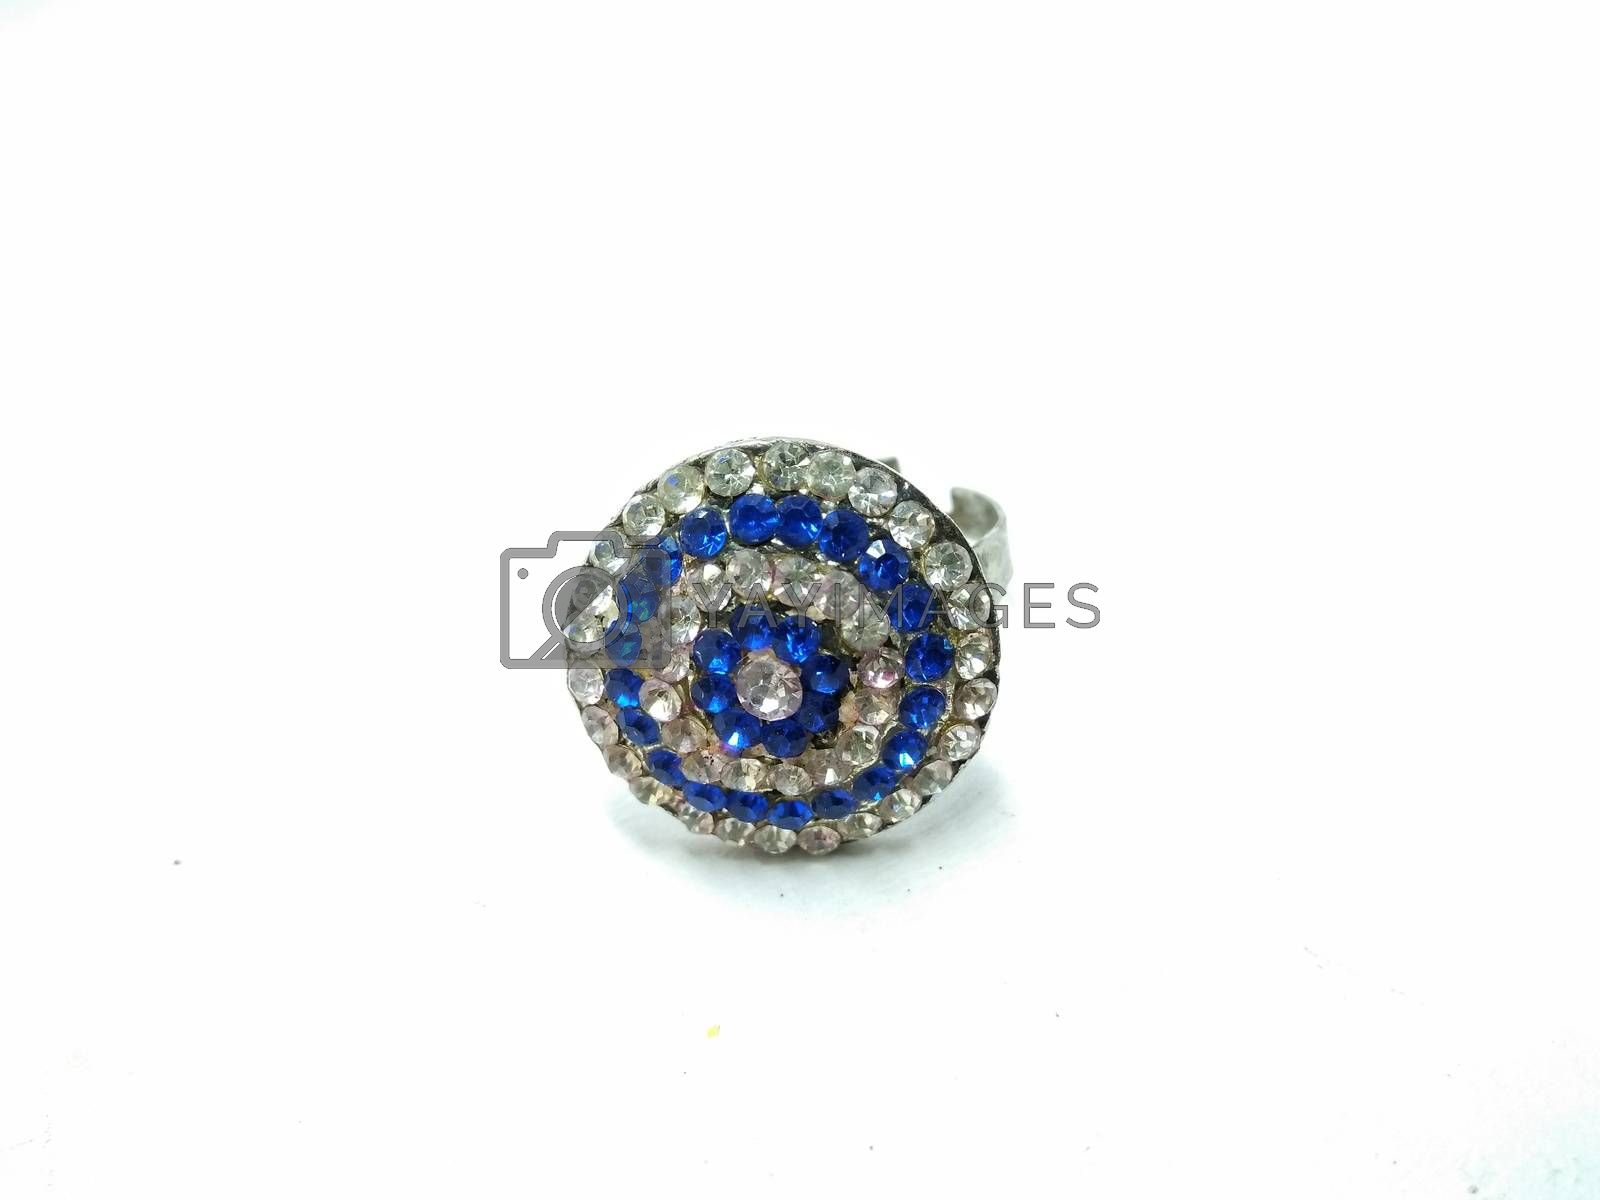 Royalty free image of A picture of earrings by Allvidmix